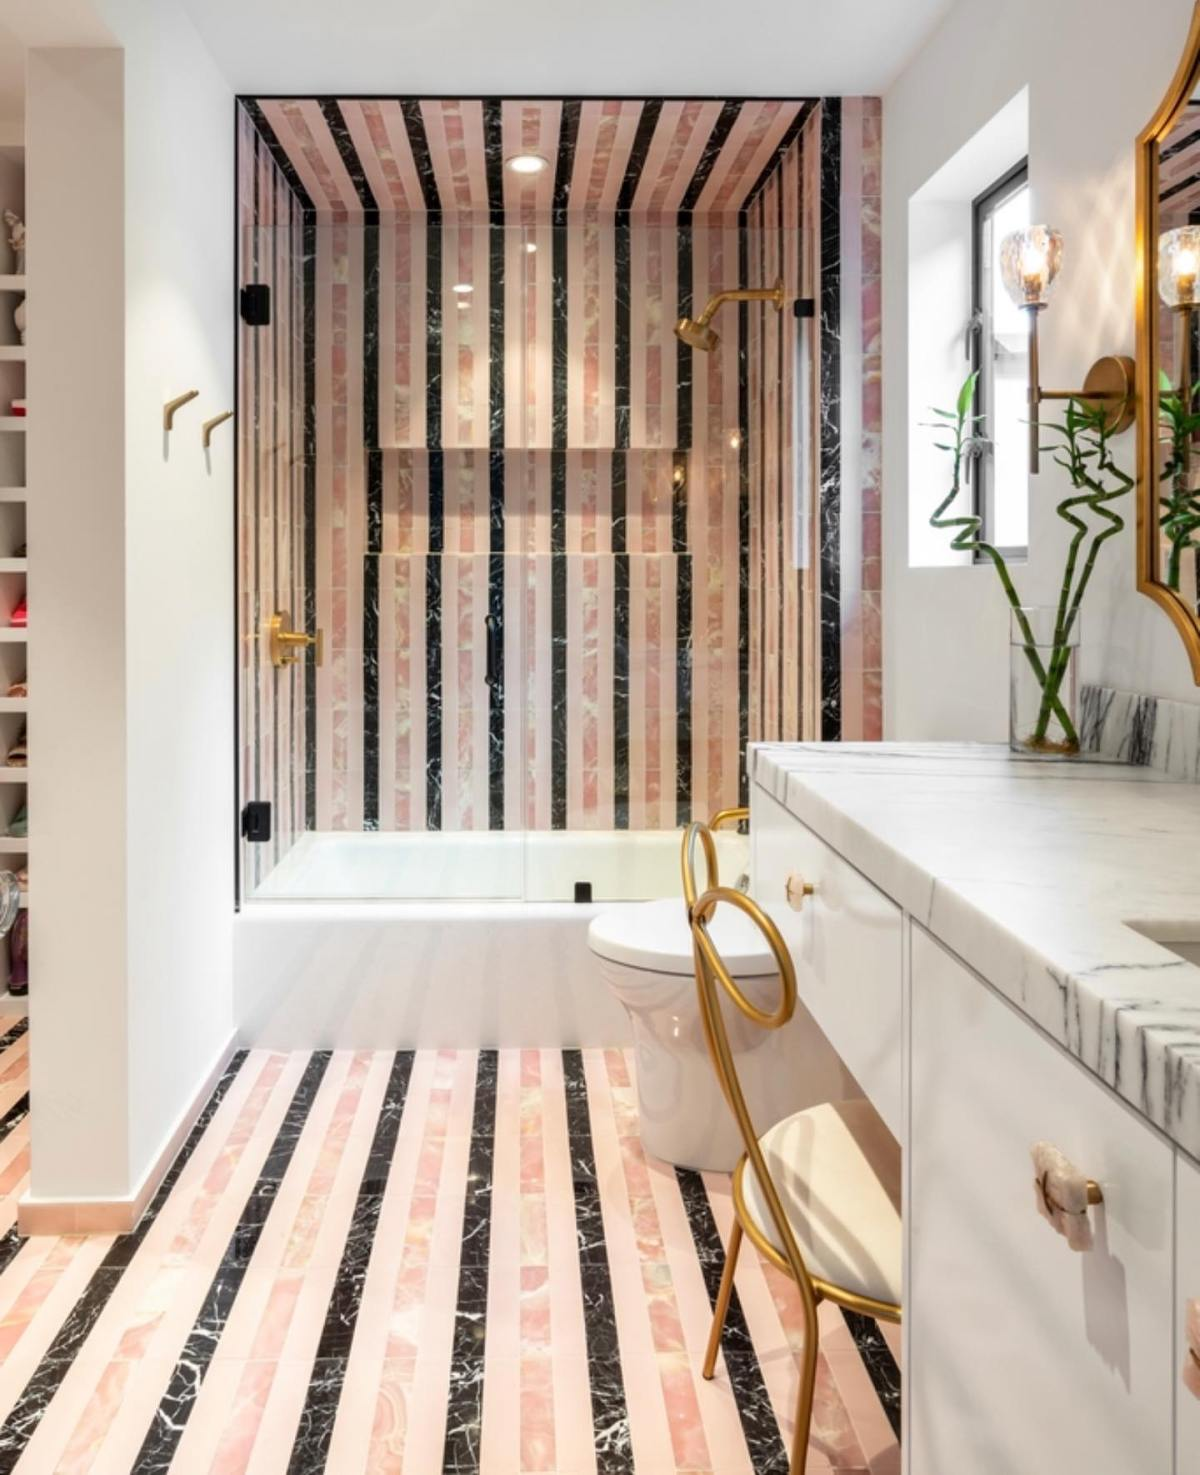 You got to admit it's just perfect for a daughter's bathroom. Awesome work by @lovecounty Interior Design and Architecture by @lankerani_architecture